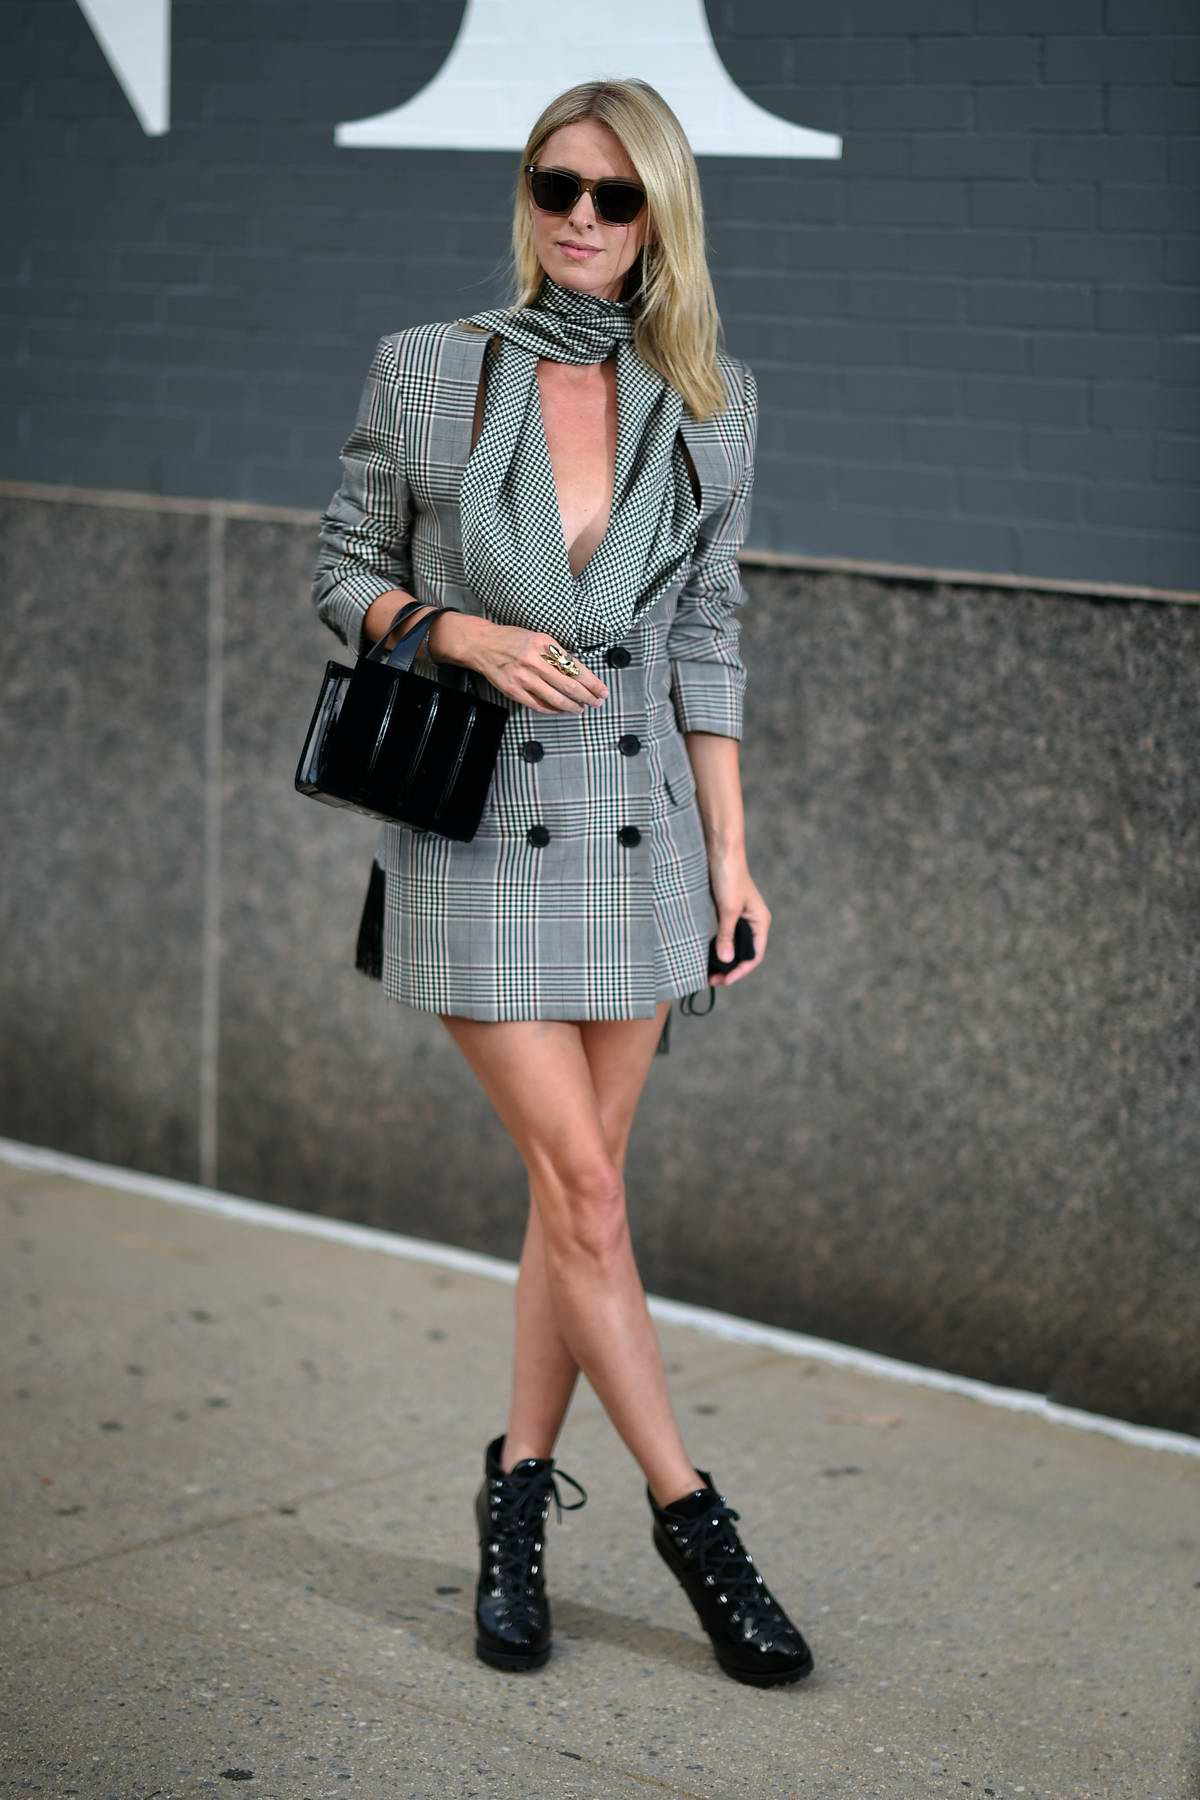 Nicky Hilton attends the Monse Fall-Winter 2020 Presentation during New York Fashion Week in New York City